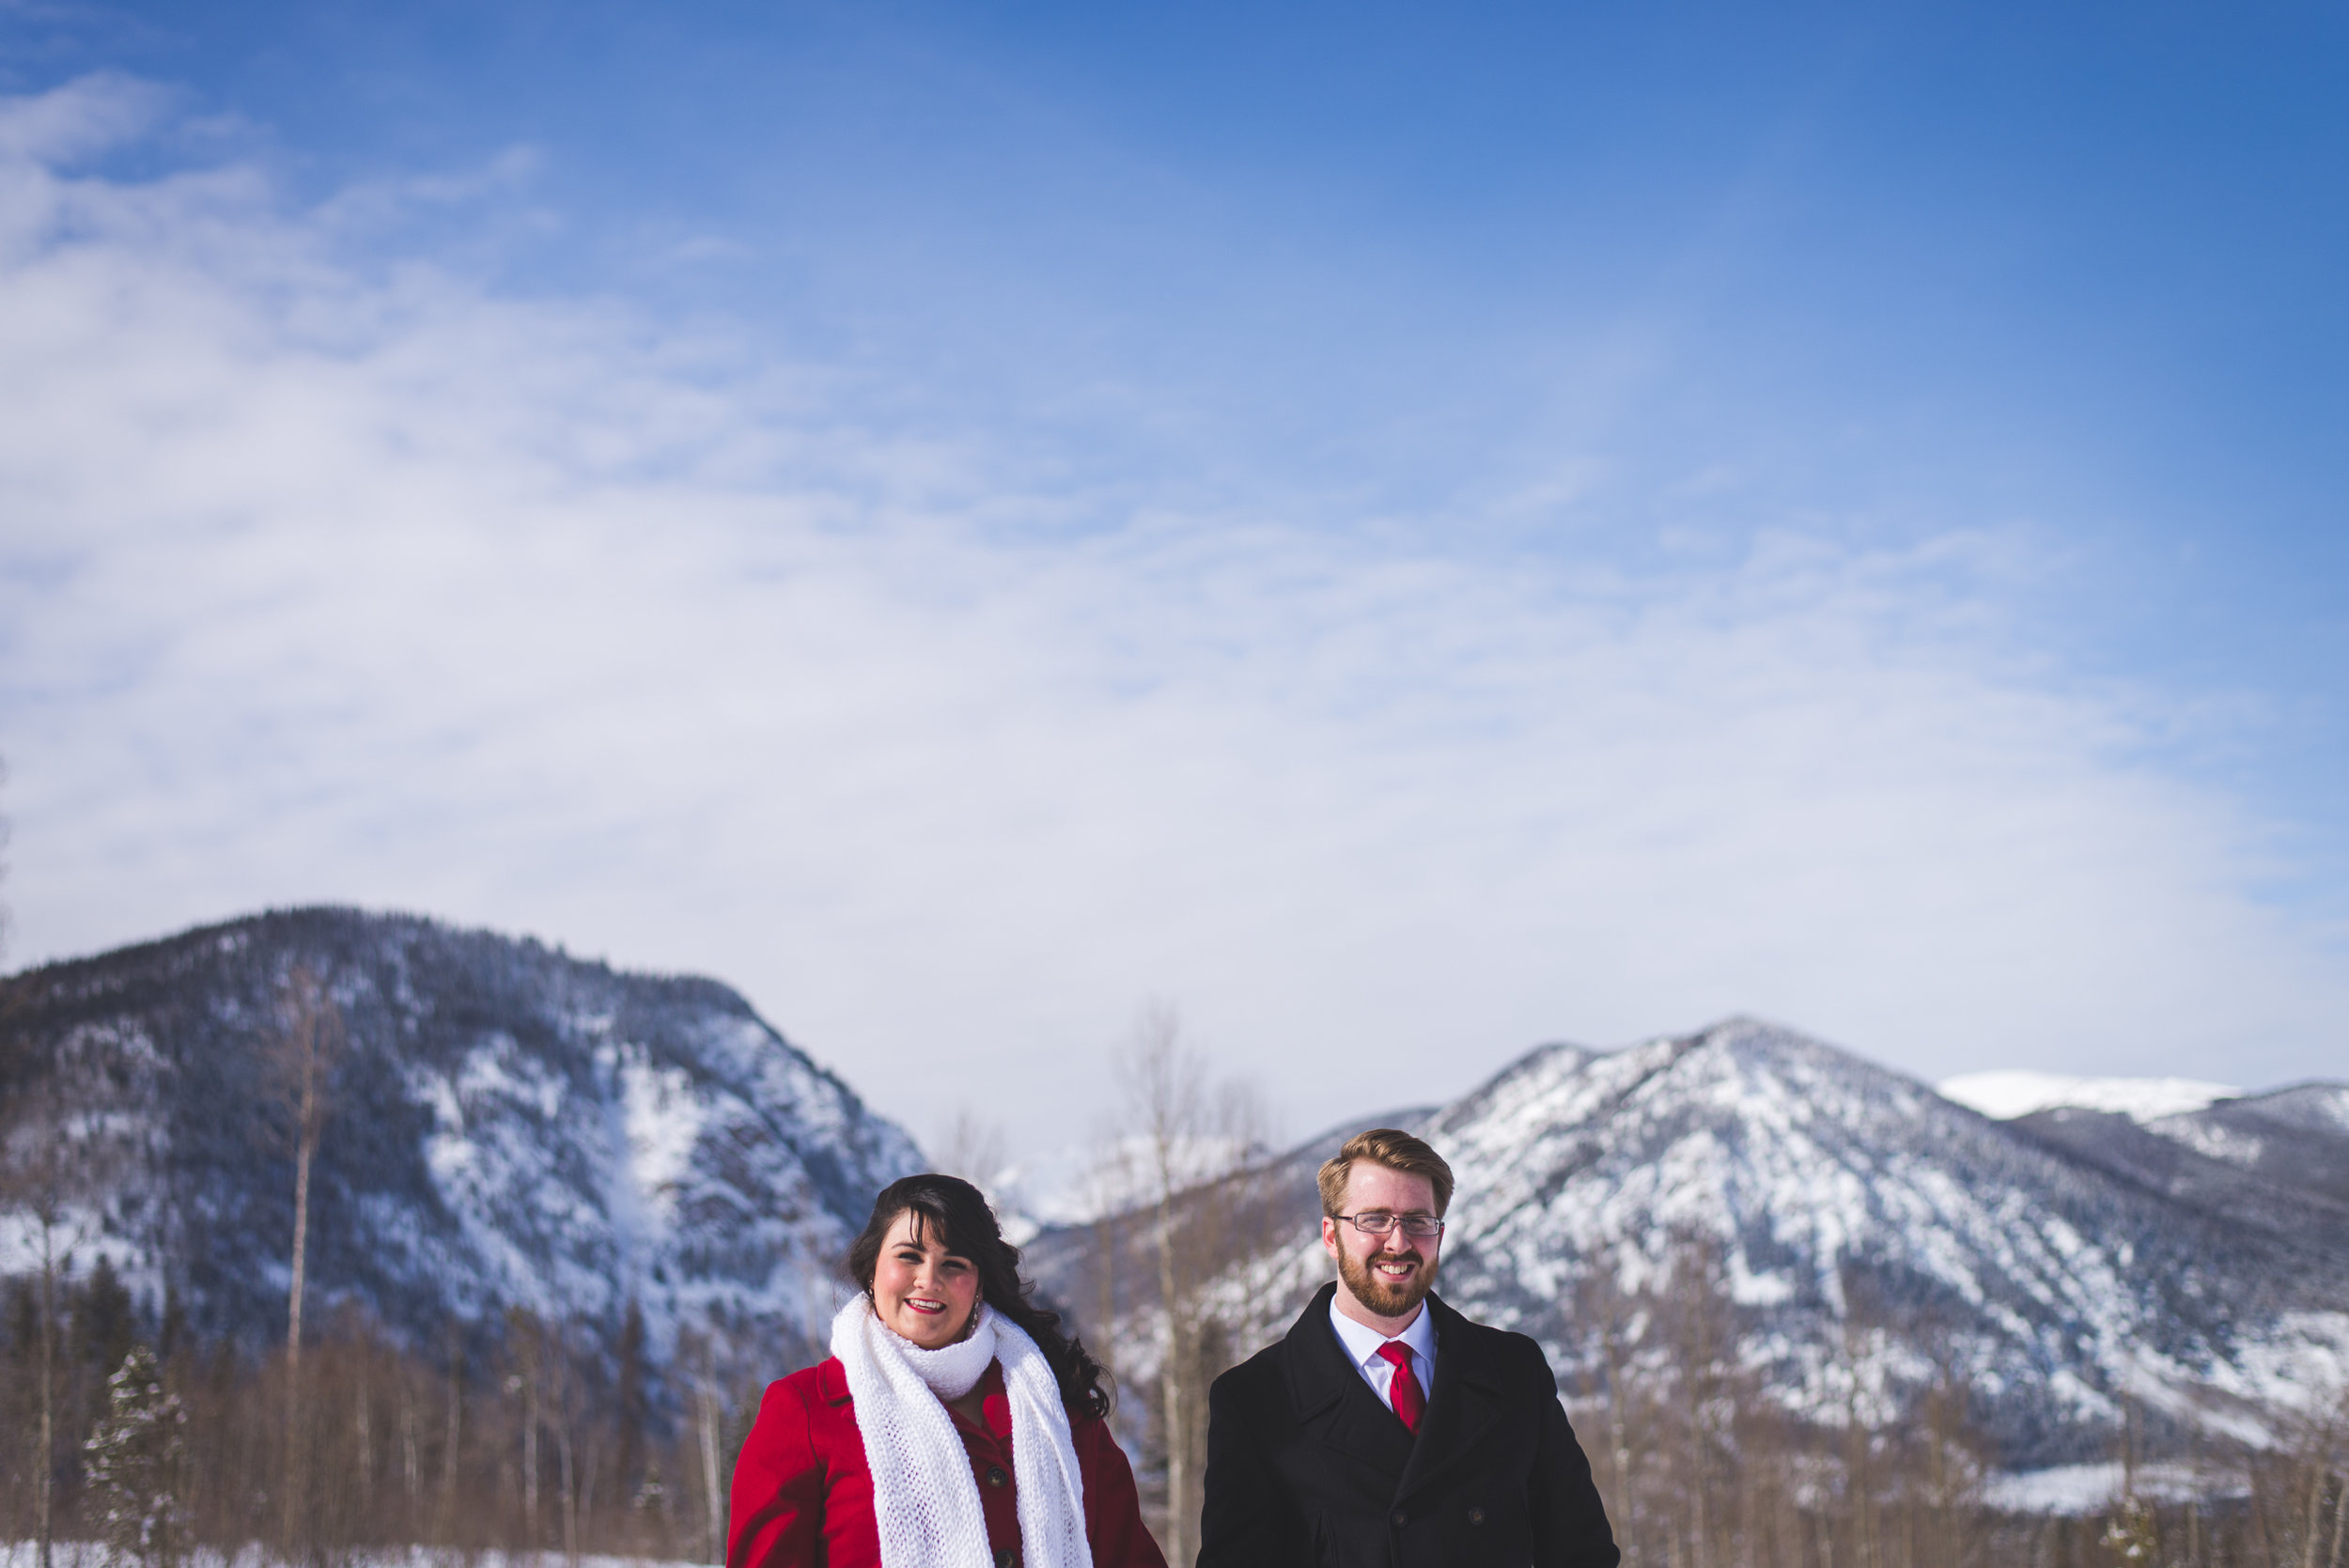 How gorgeous is for a winter backdrop for your winter elopement? A simple setting does the trick for a Colorado mountain elopement!